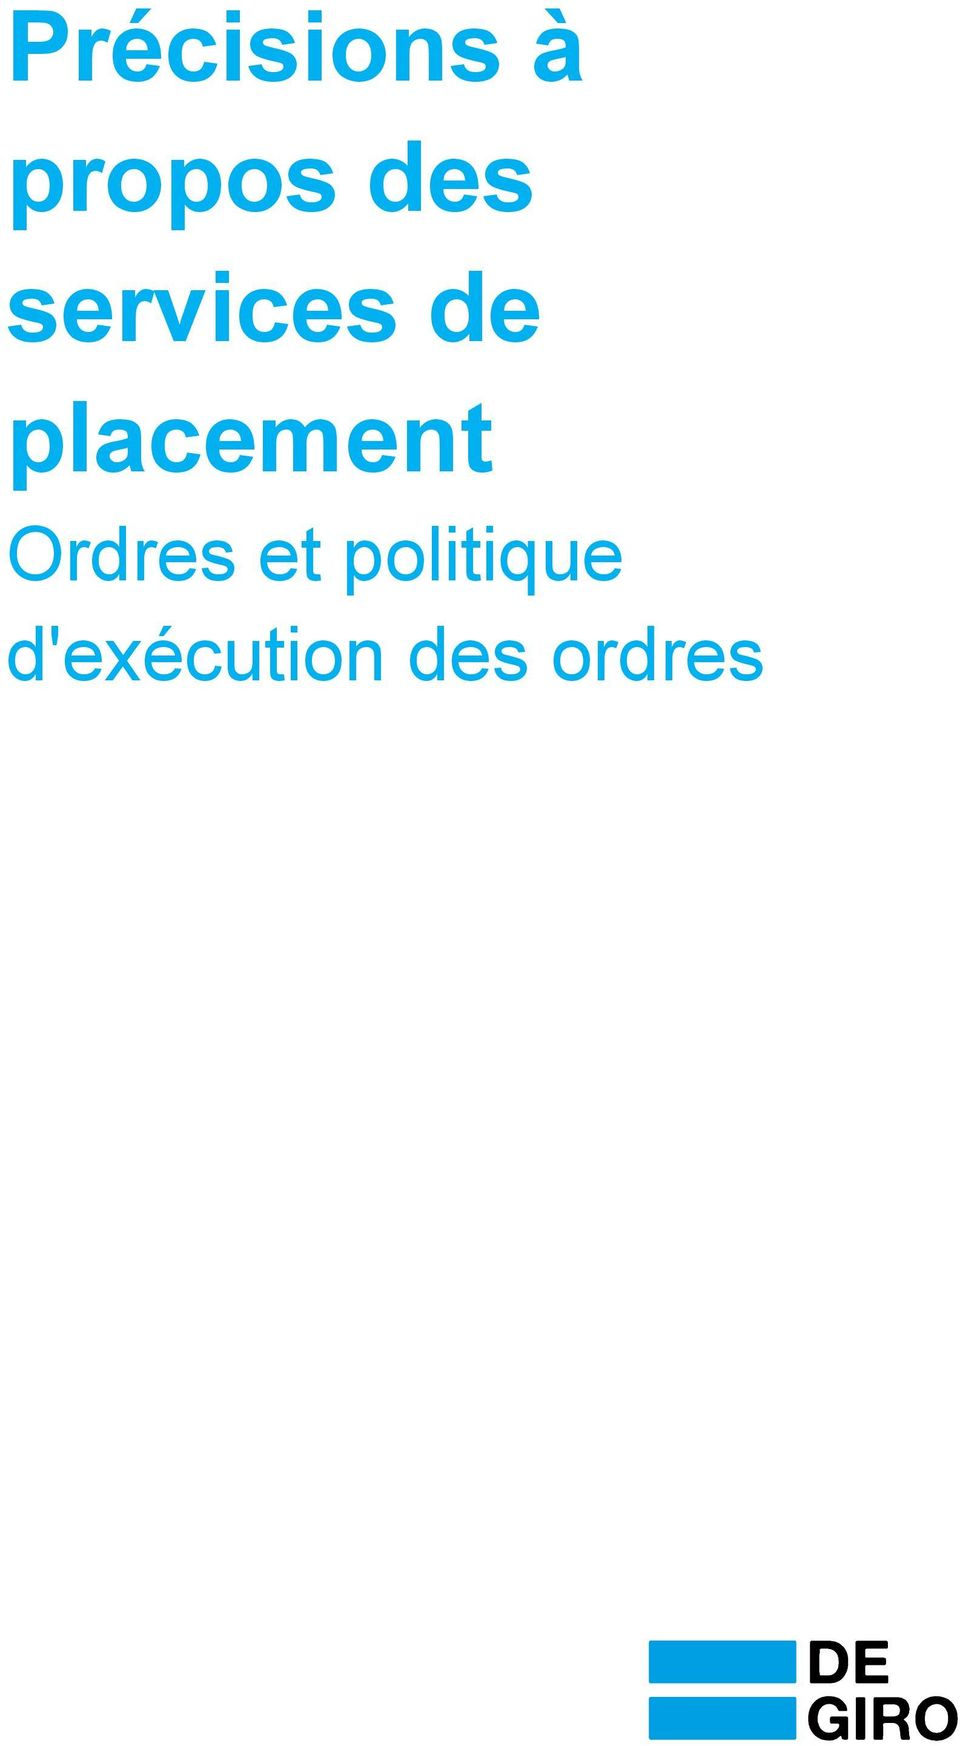 placement Ordres et